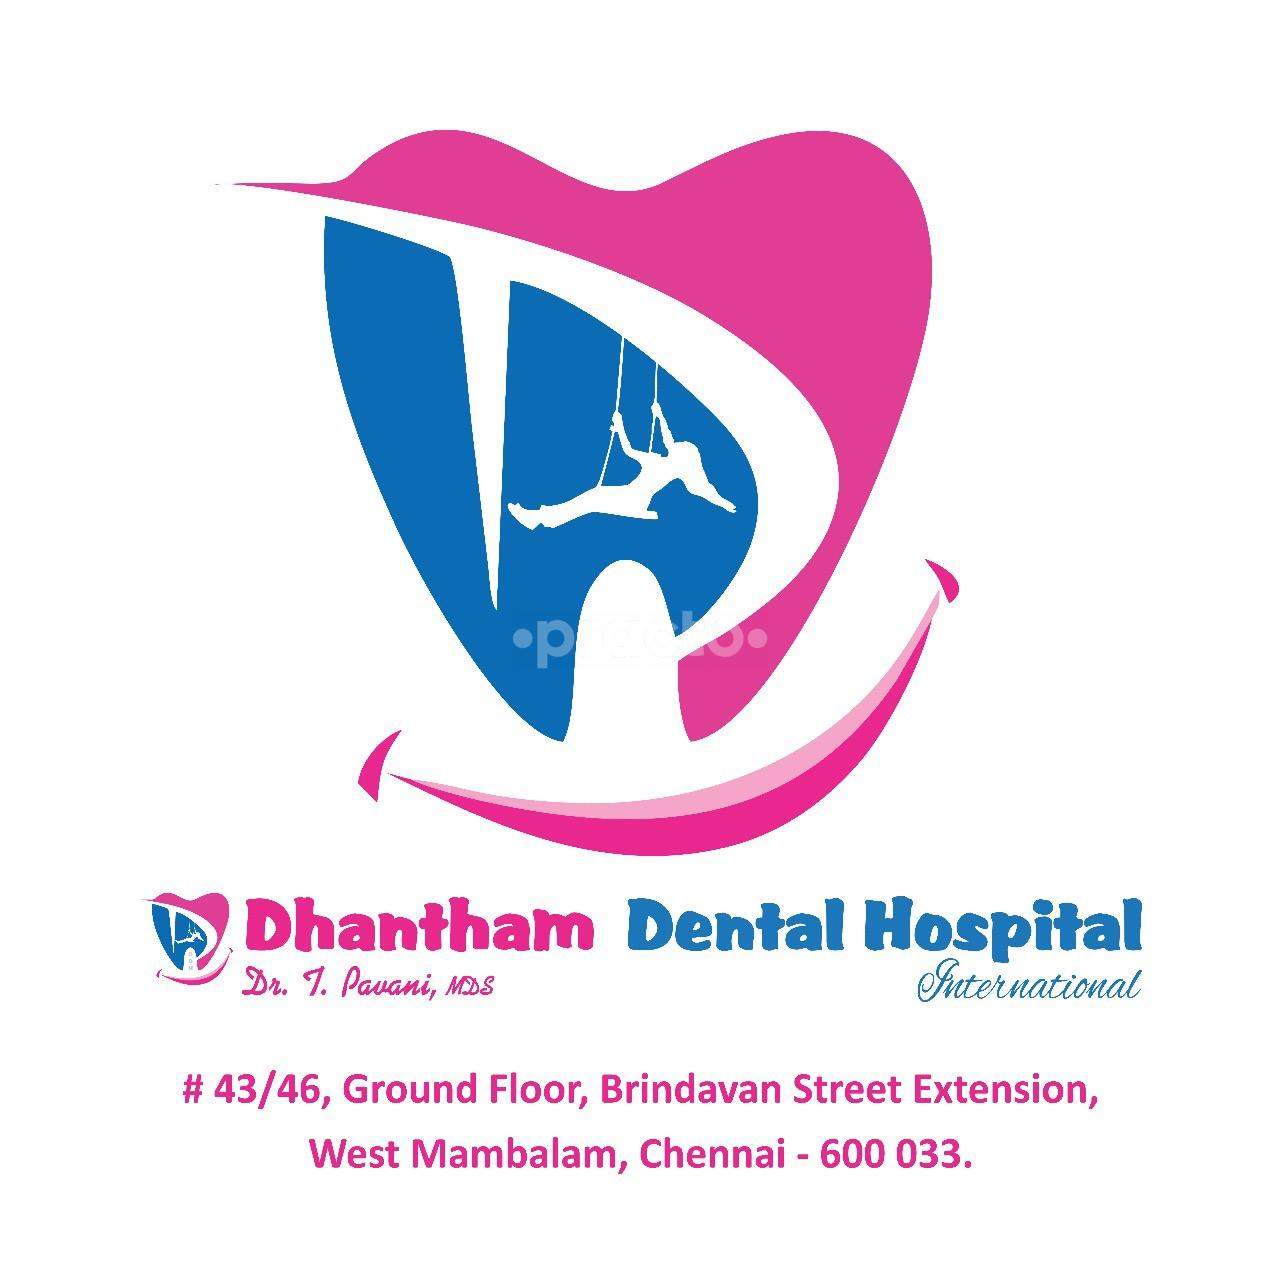 Dhantham Dental Hospital International